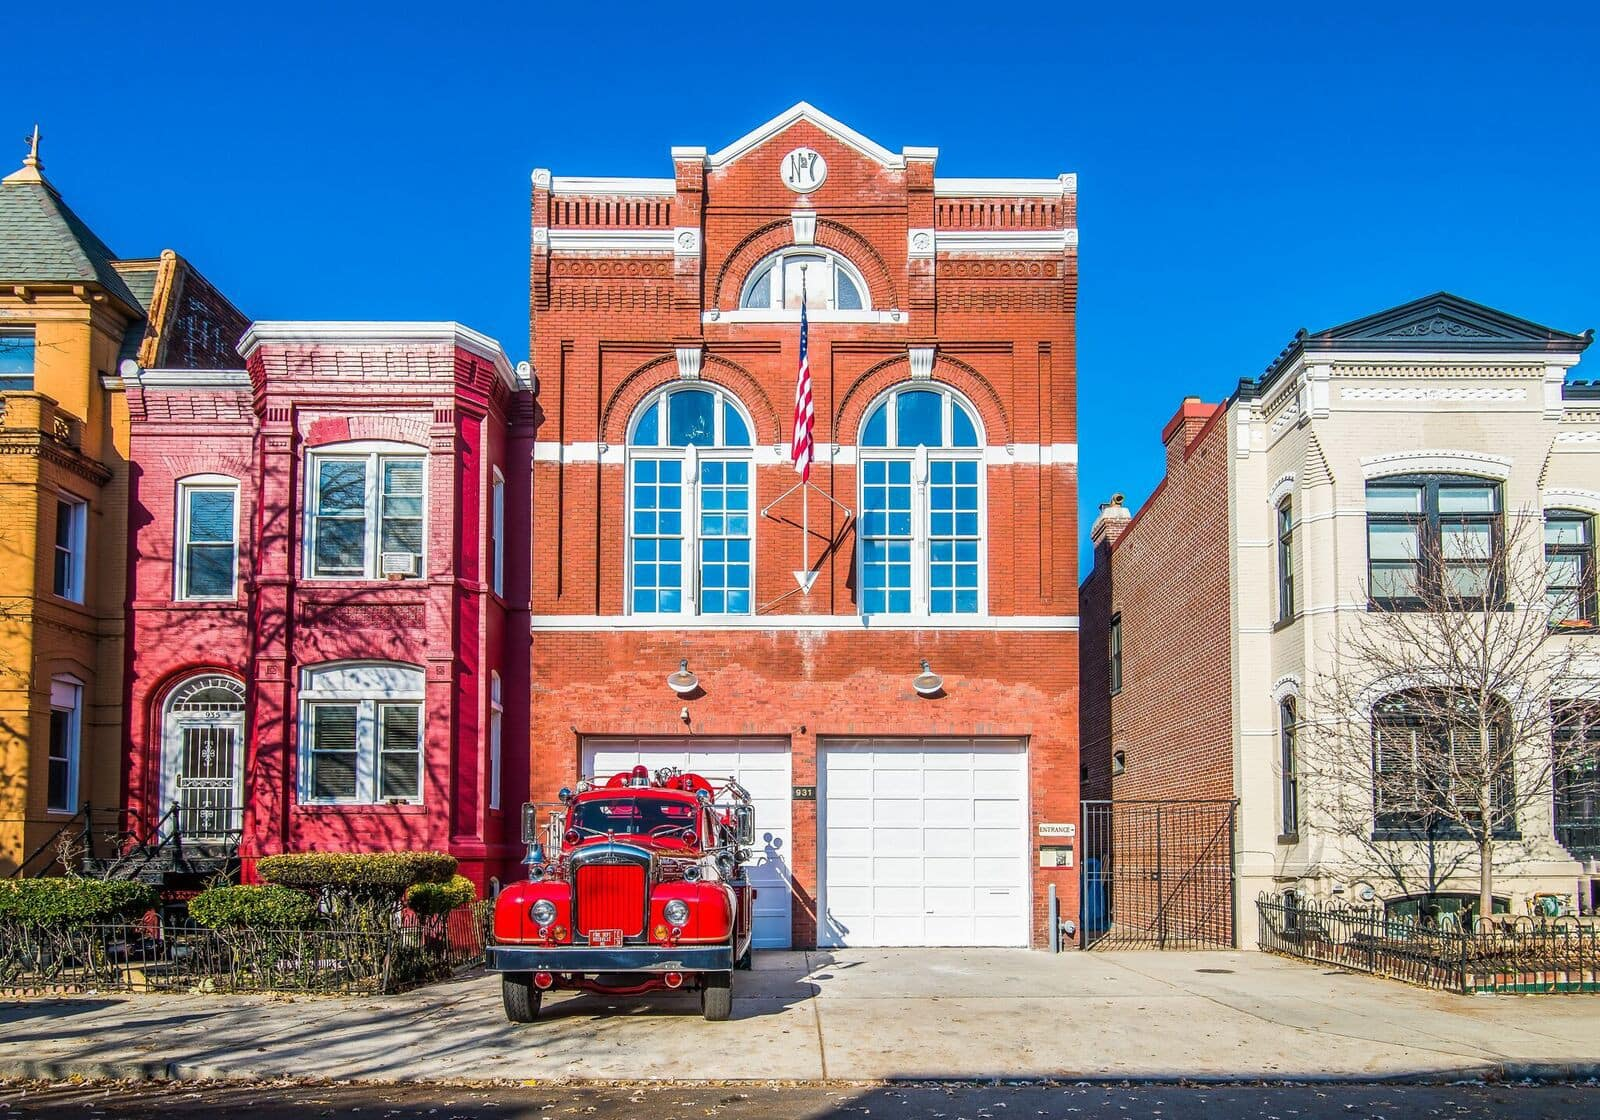 DC's First African-American Firehouse Is Now An AirBnB